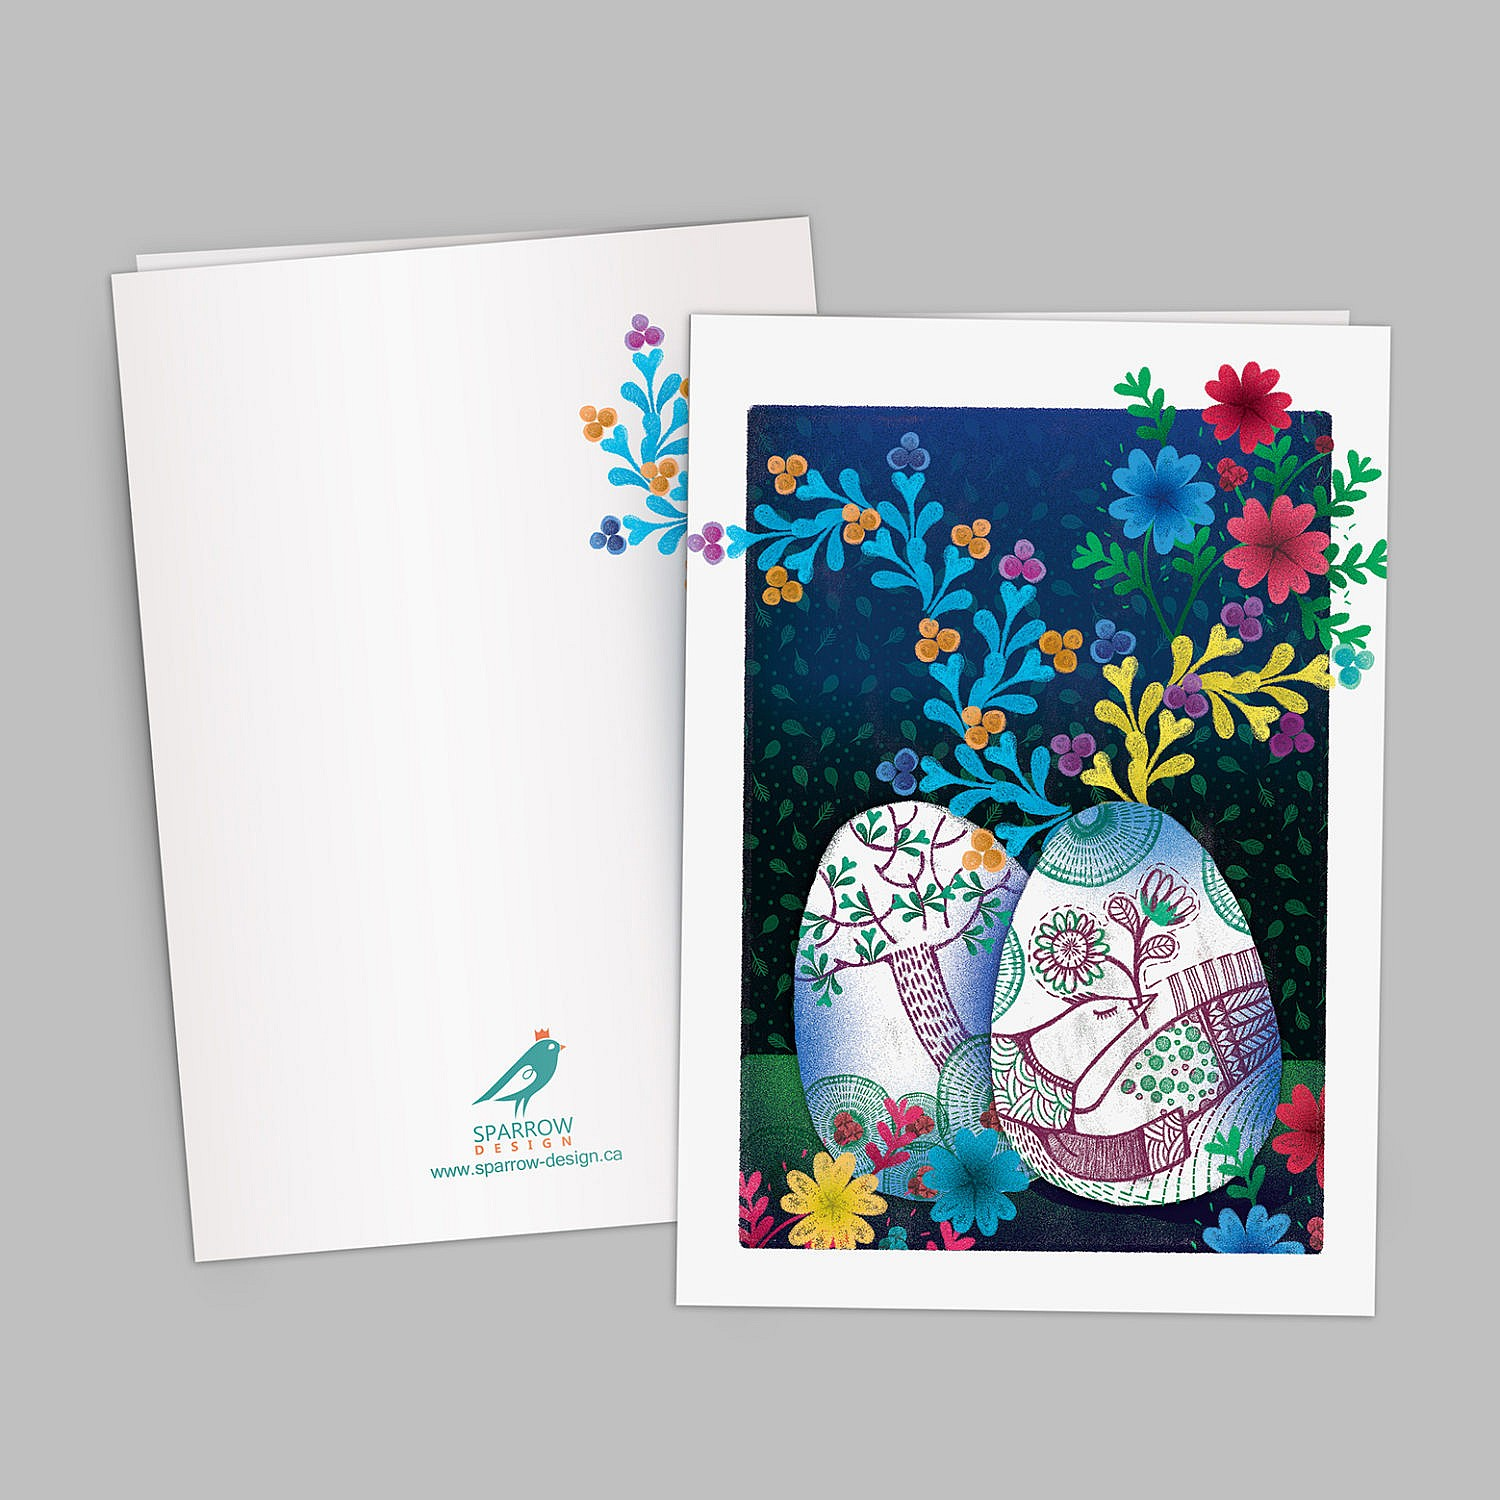 The image include an illustrated greeting card which is designed to celebrate Spring. The image shows two beautiful painted eggs one is showing a bird and the second one is showing a tree which is has pink blossom. In the background there are colorful flowers. The background is blue and green.